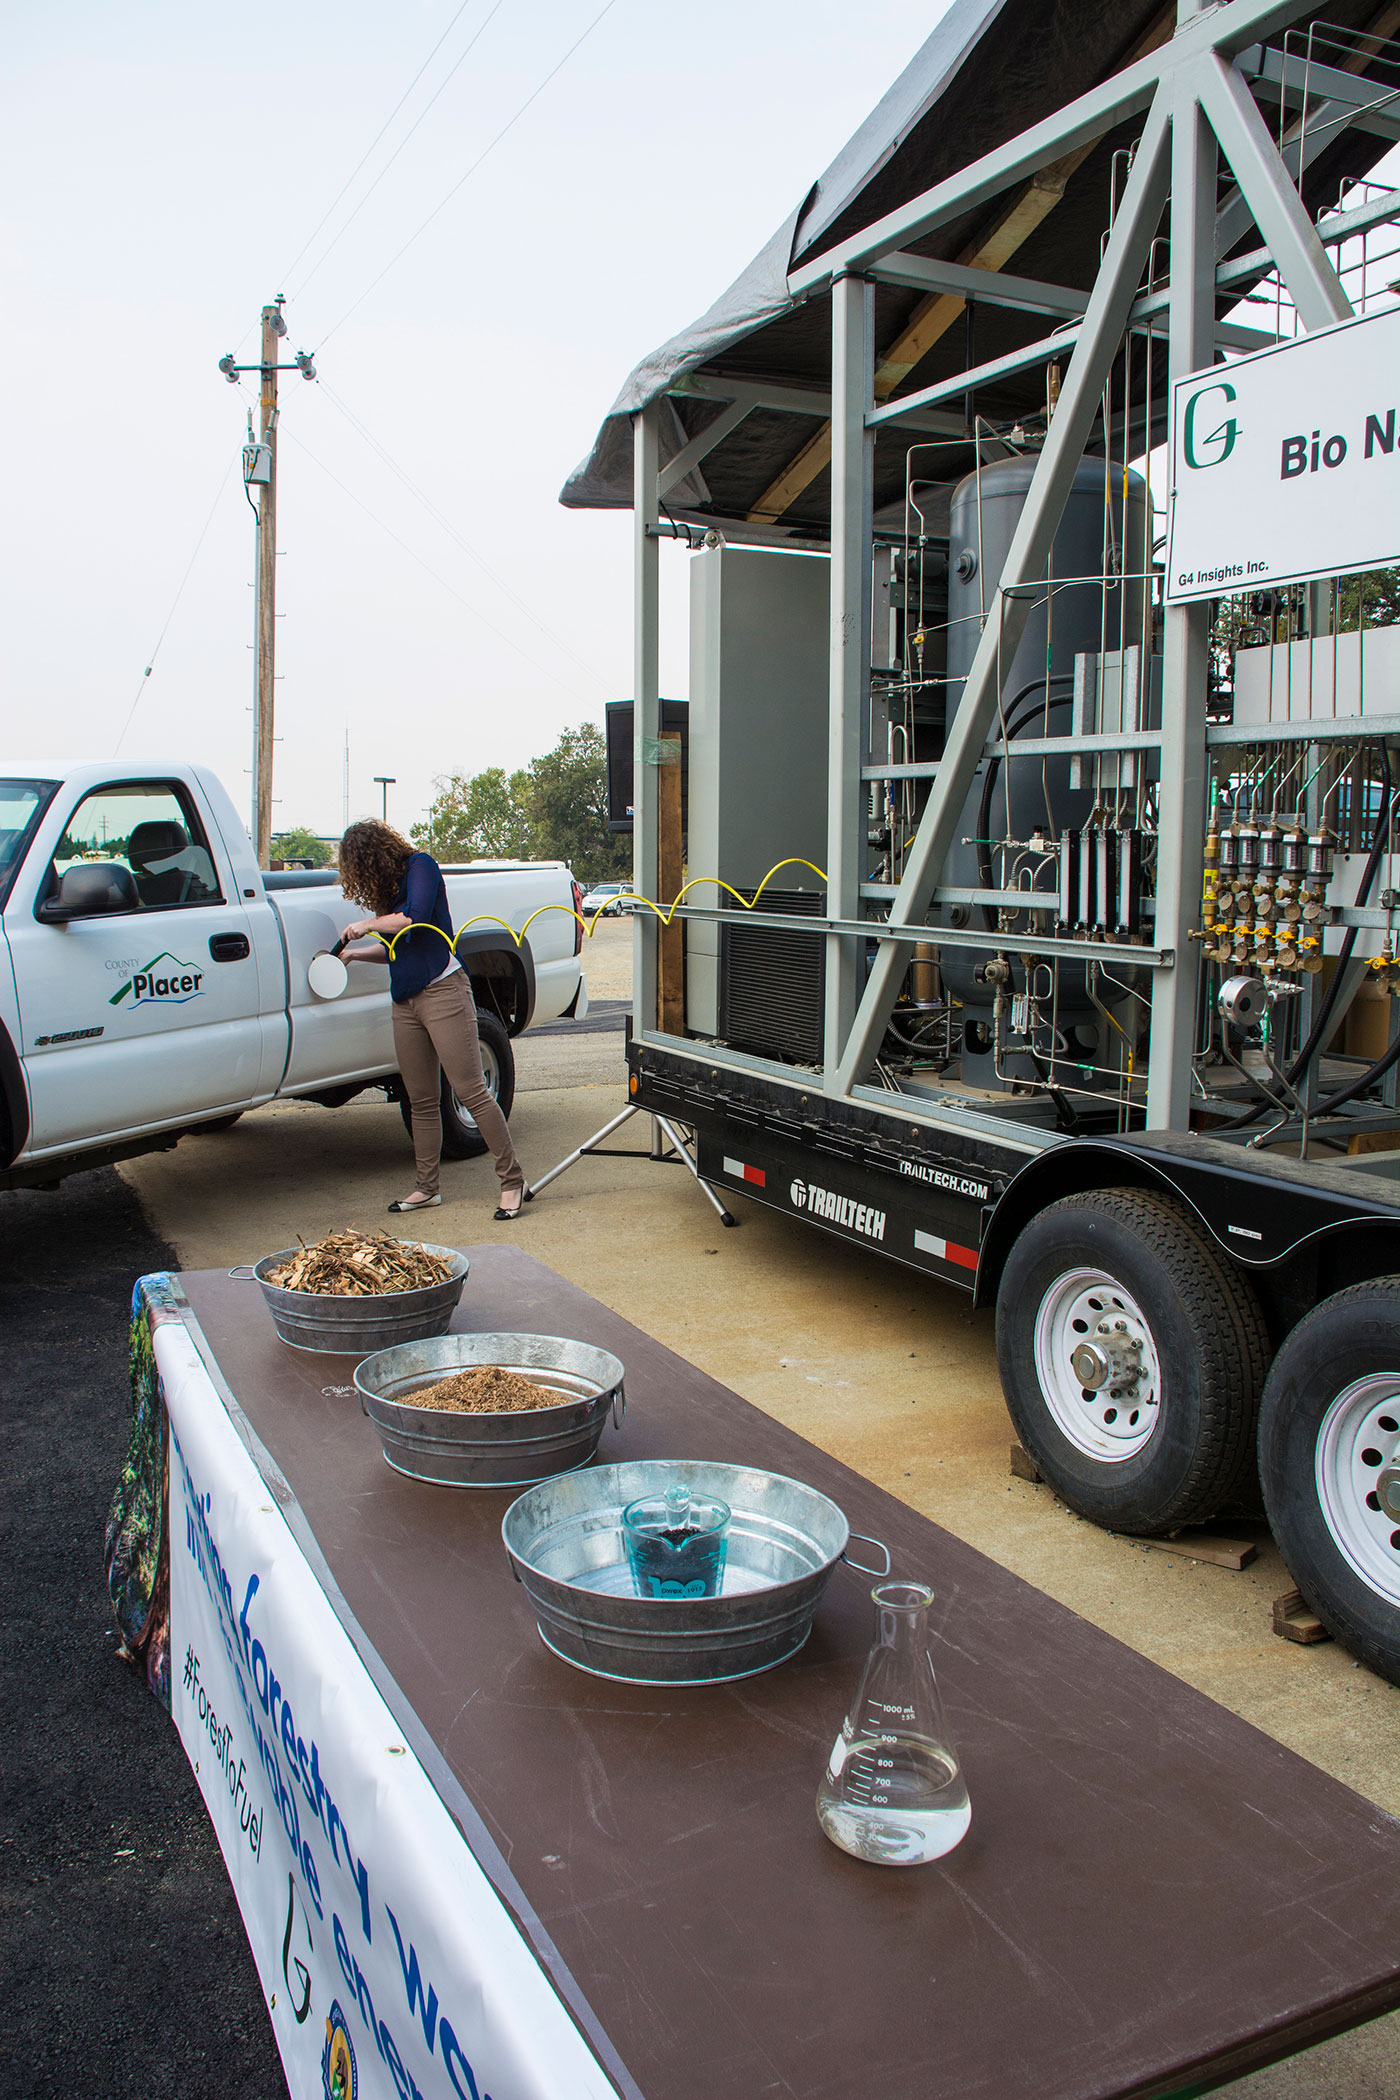 Person filling up truck with bio natural gas